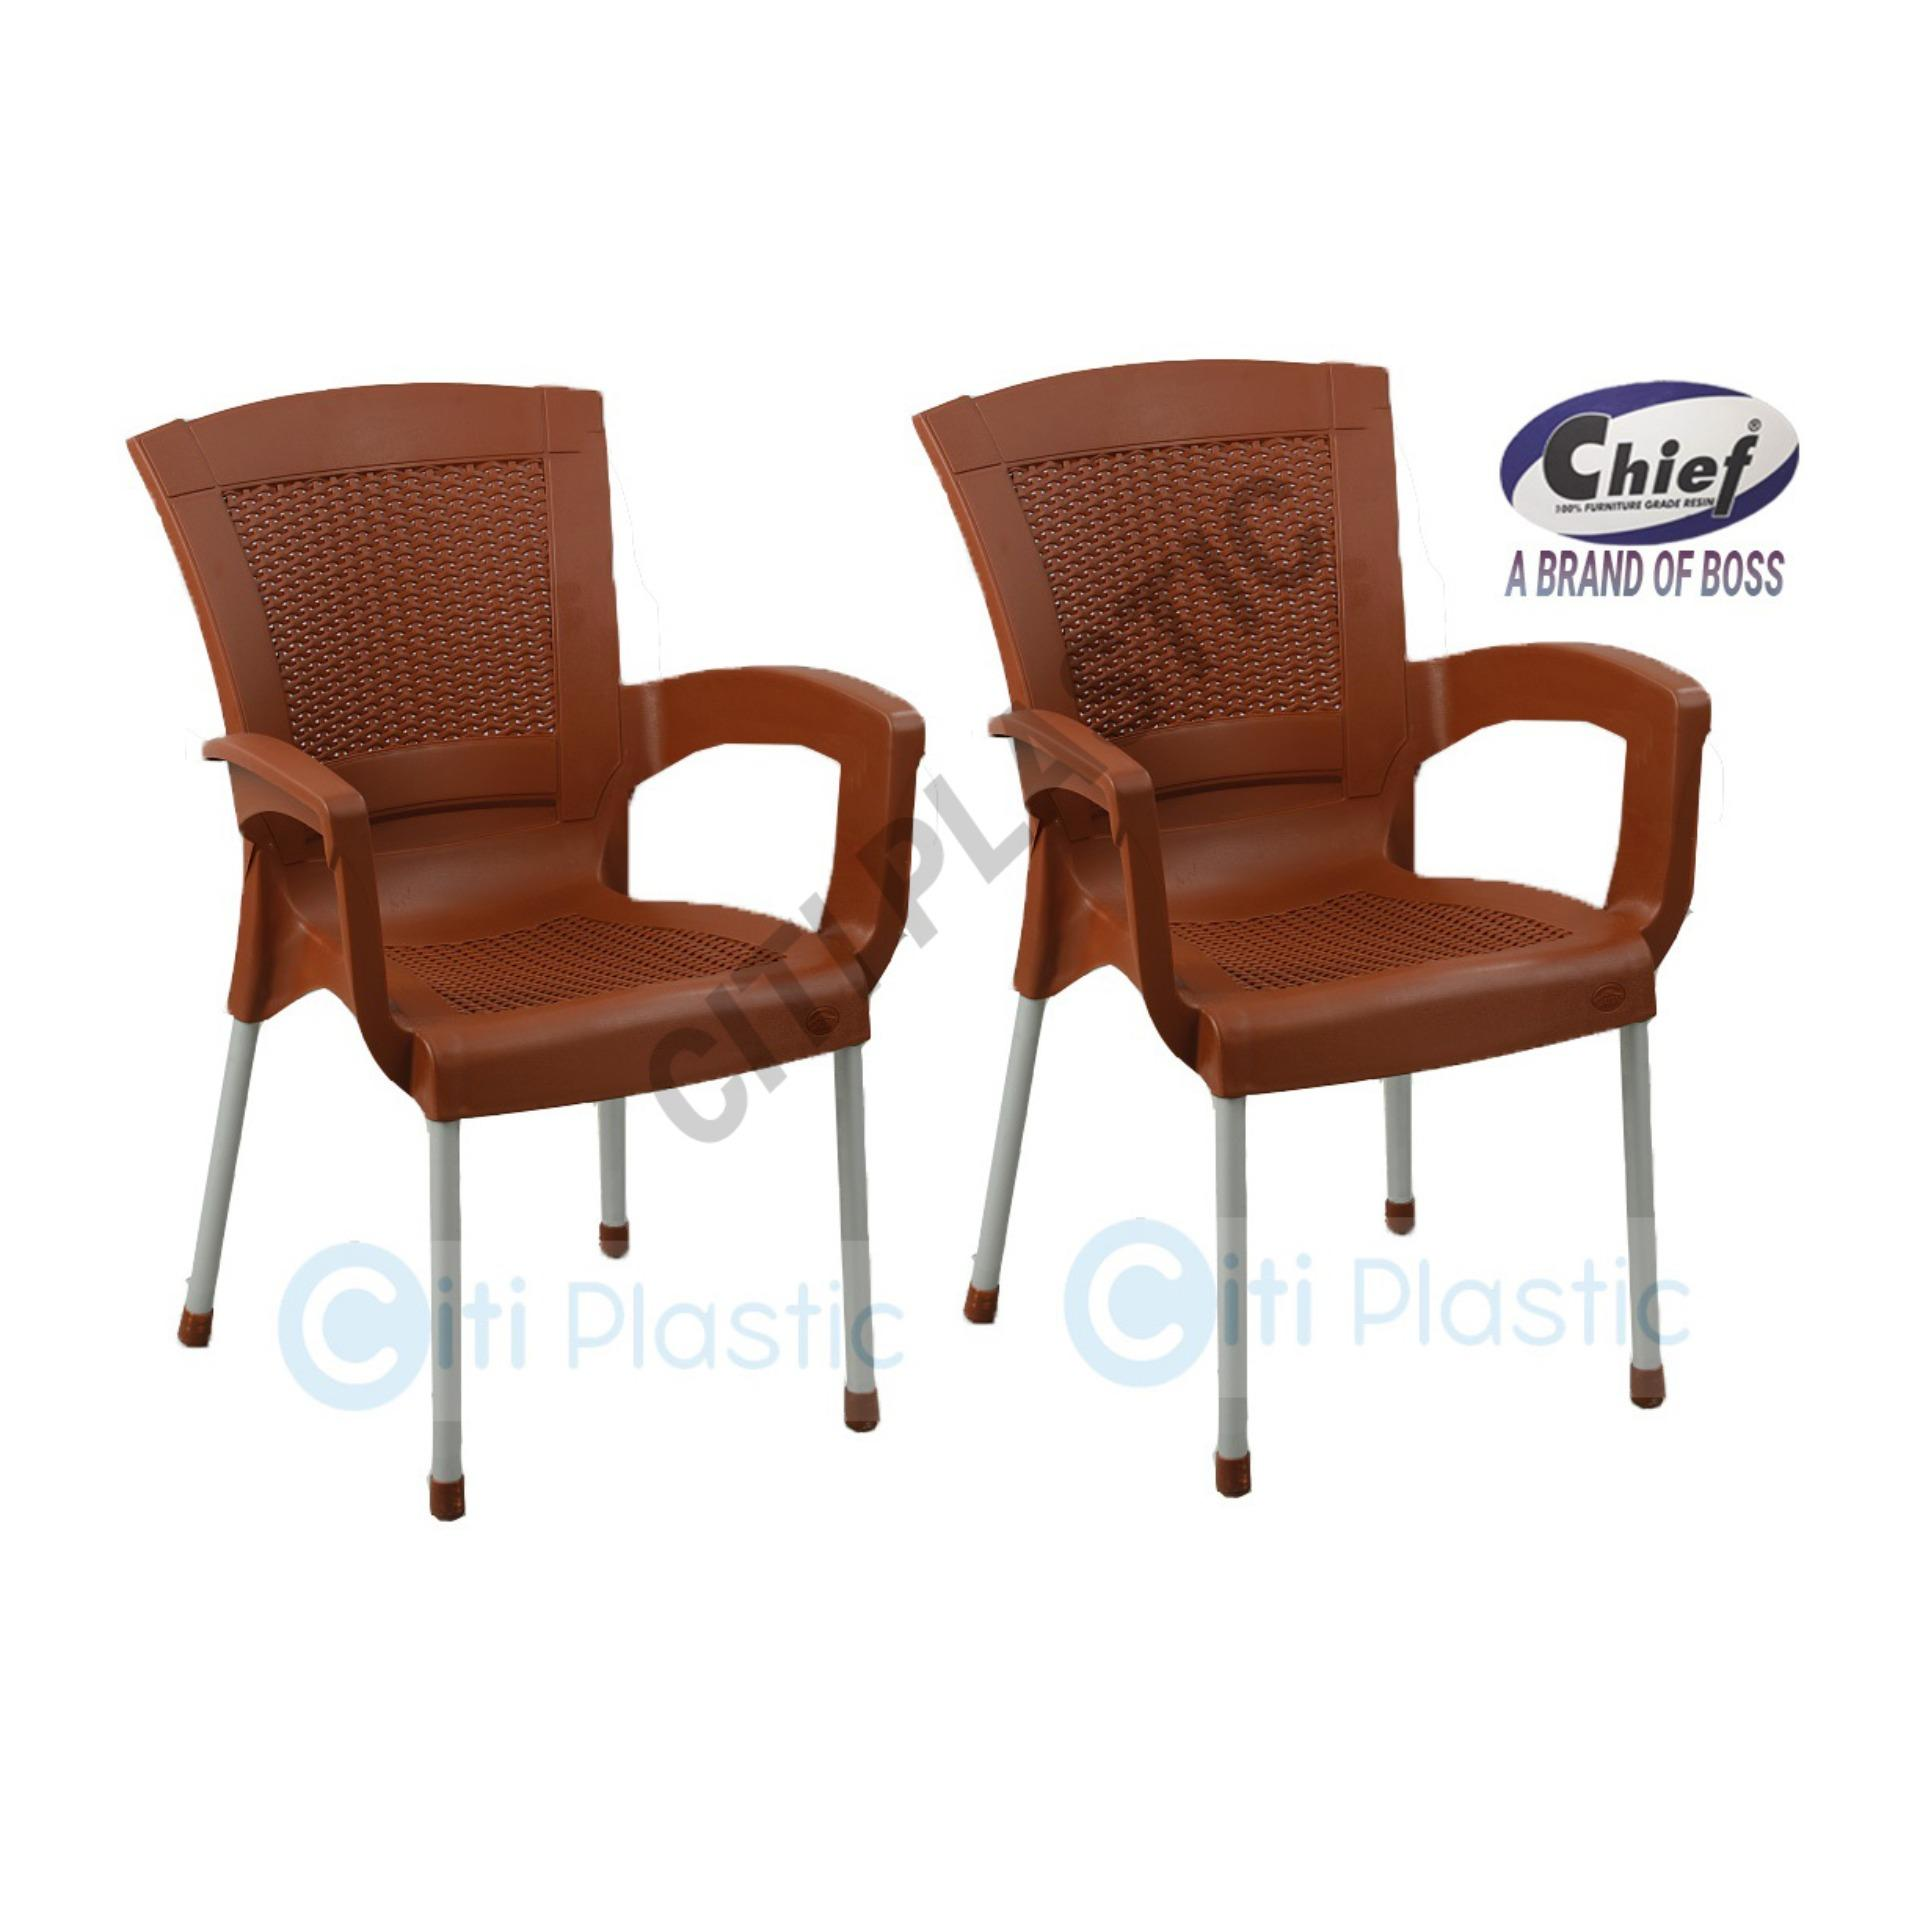 Buy Leader Furniture At Best Prices Online In Pakistan Daraz Pk